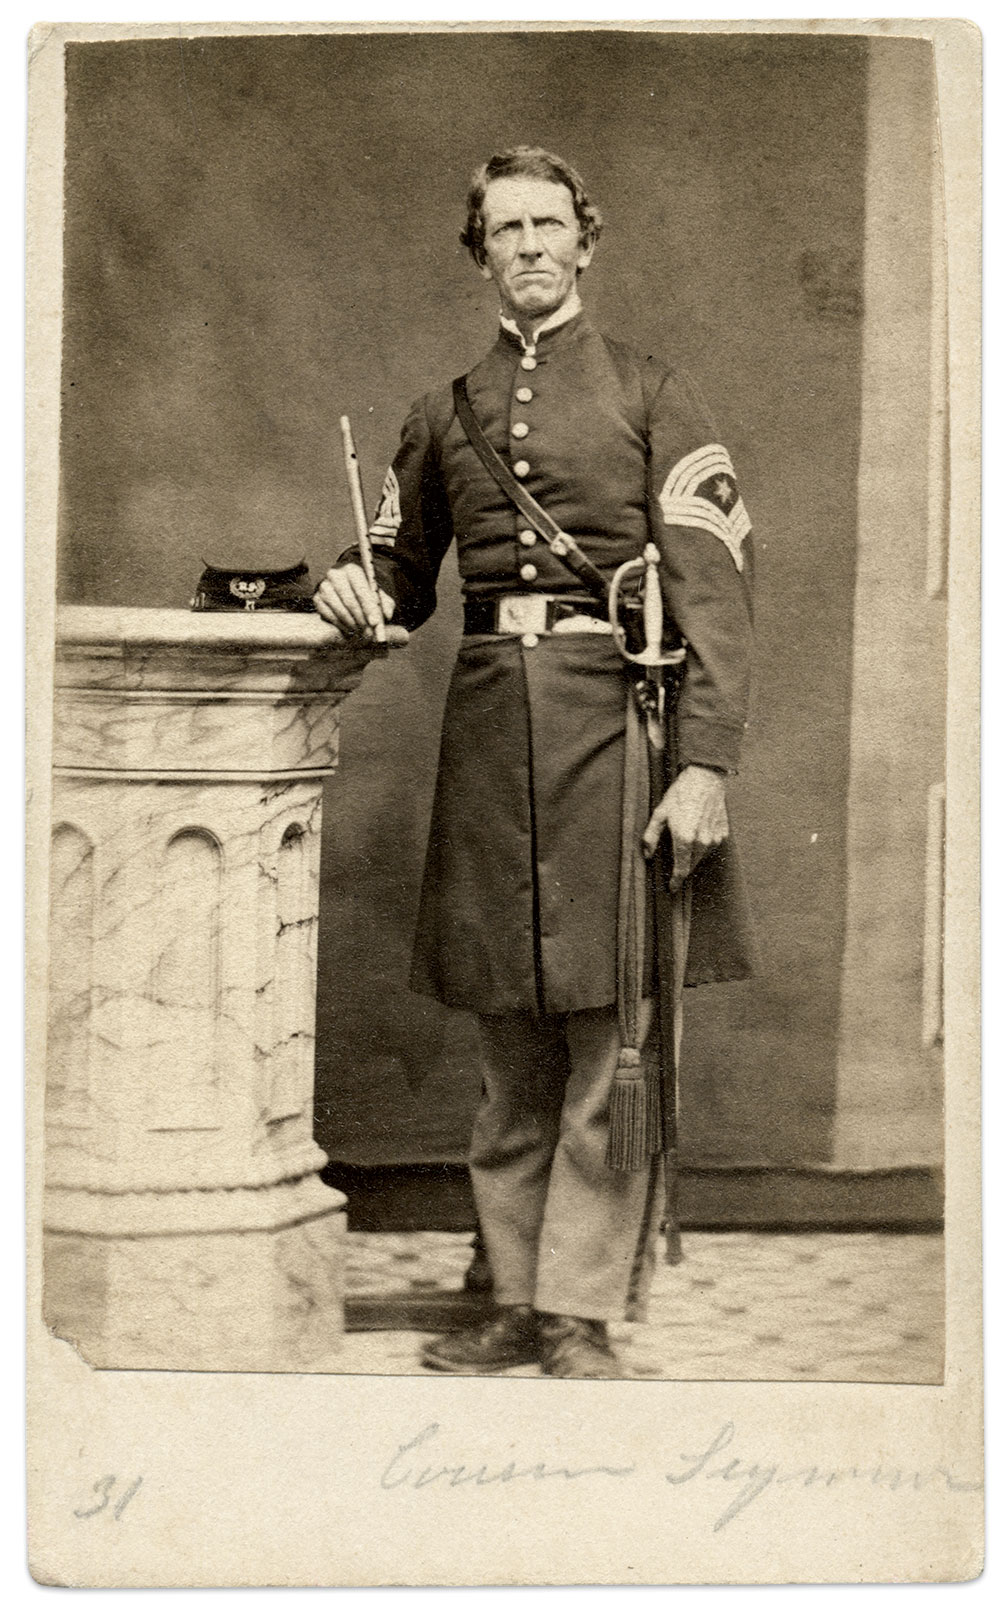 Carte de visite by Richard Walzl of Baltimore, Md. Rick Carlile Collection.